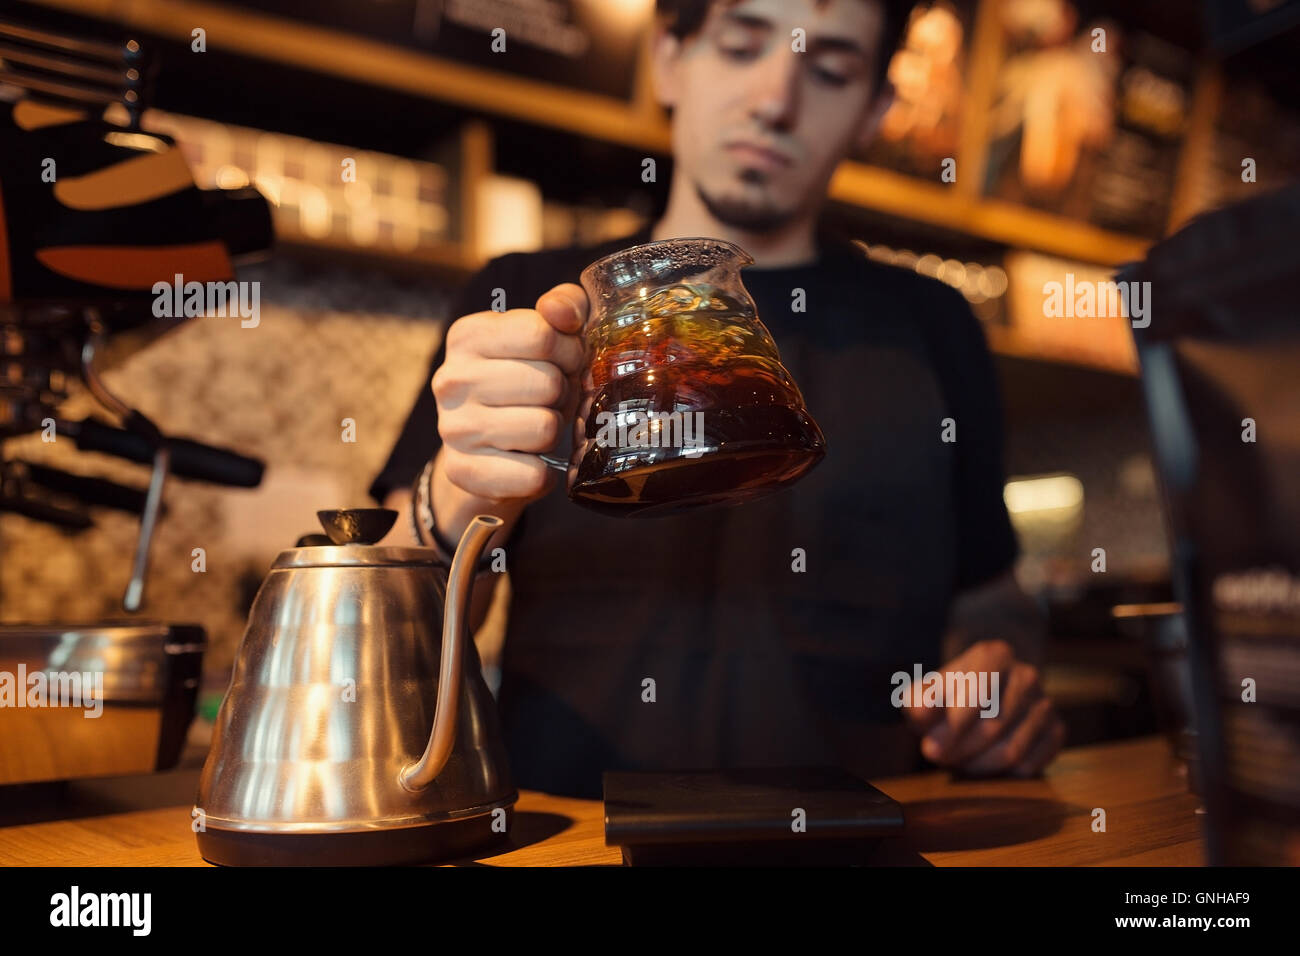 Barista at work in a coffee shop - Stock Image